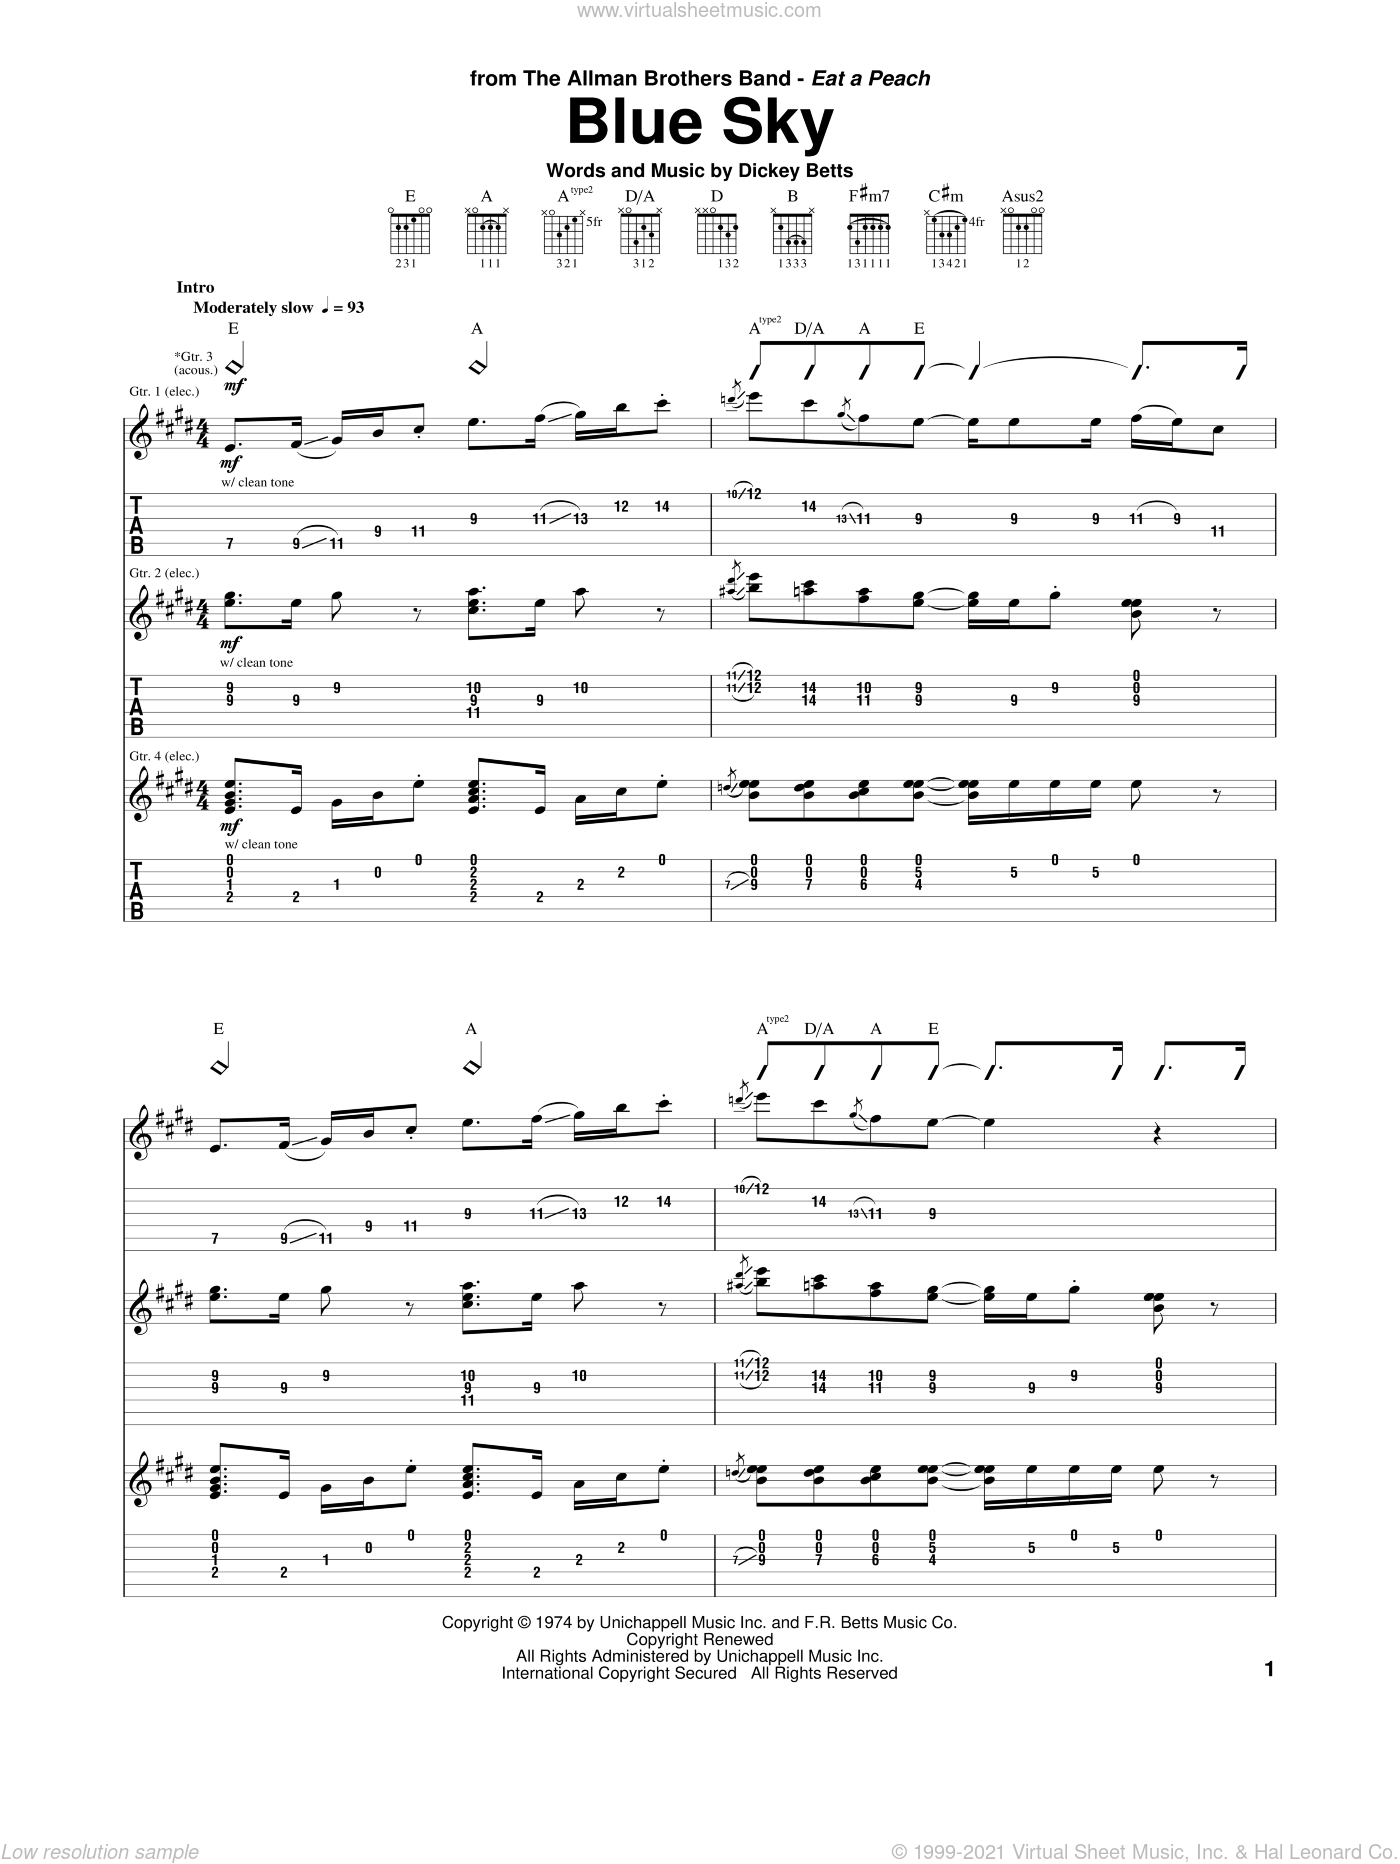 Blue Sky sheet music for guitar (tablature) by Allman Brothers Band, The Allman Brothers Band and Dickey Betts, intermediate